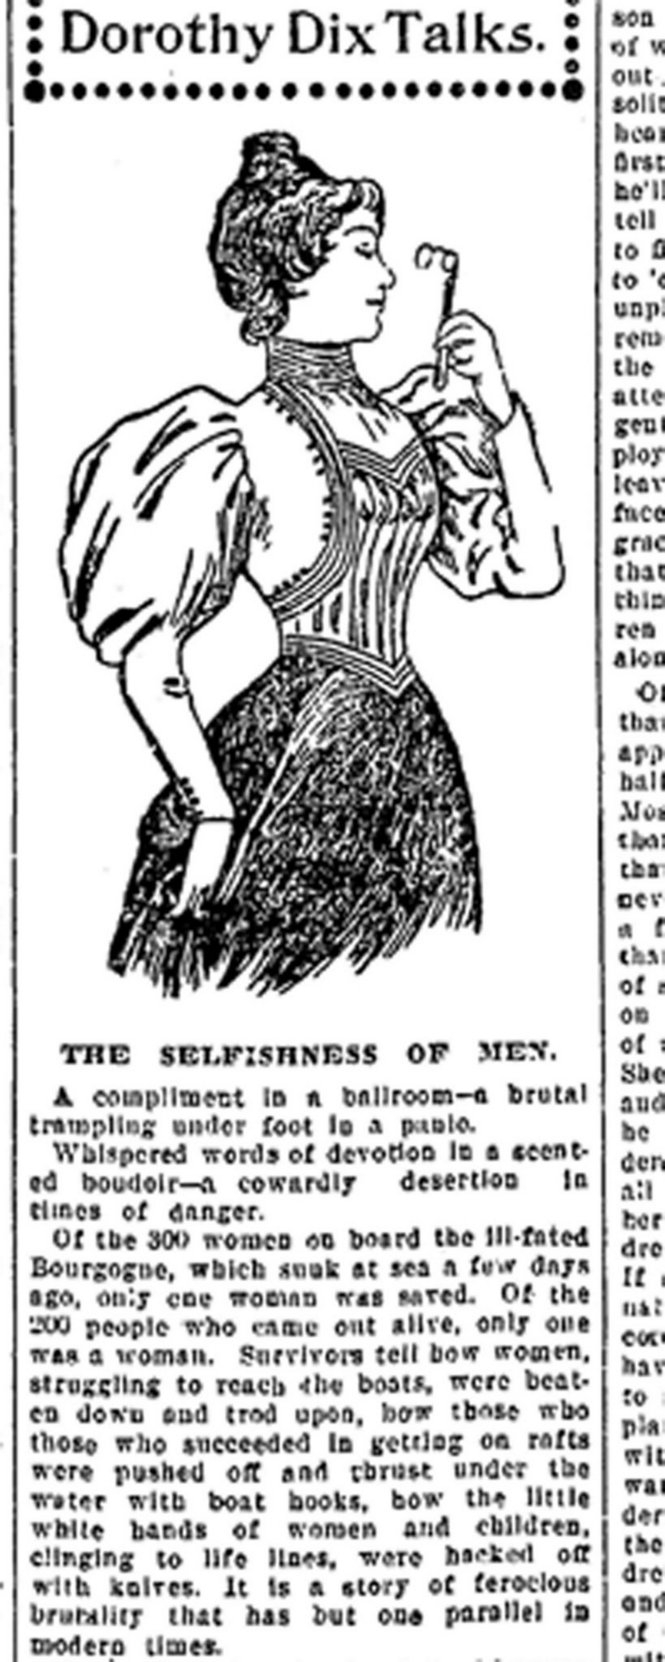 file dorothy dix the selfishness of men jpg  file dorothy dix 1898 the selfishness of men jpg